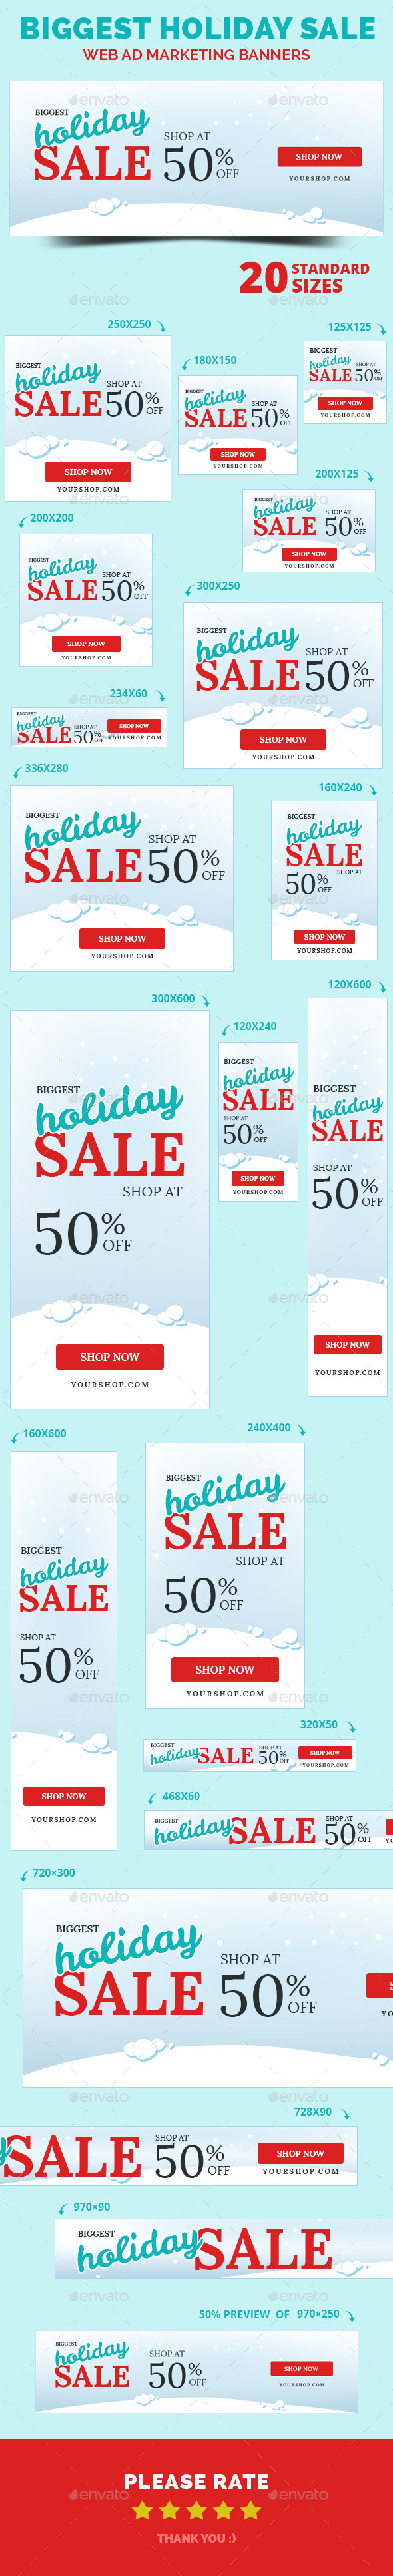 Biggest Holiday Sale Web Ad Marketing Banners - Banners & Ads Web Elements